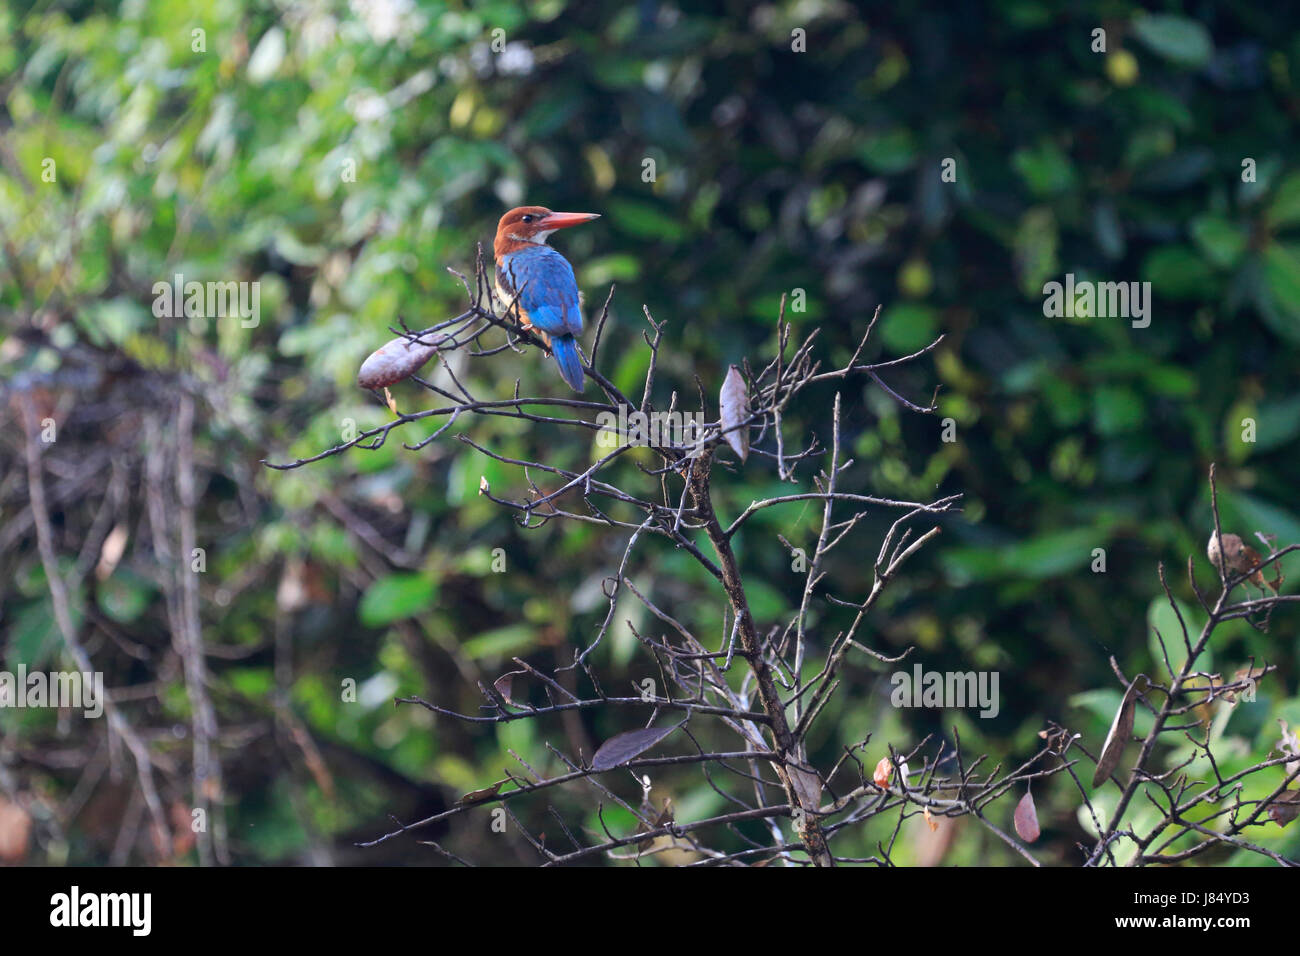 White-throated kingfisher (Halcyon smyrnensis) perched on branch in Bangladesh Sundarbans - Stock Image